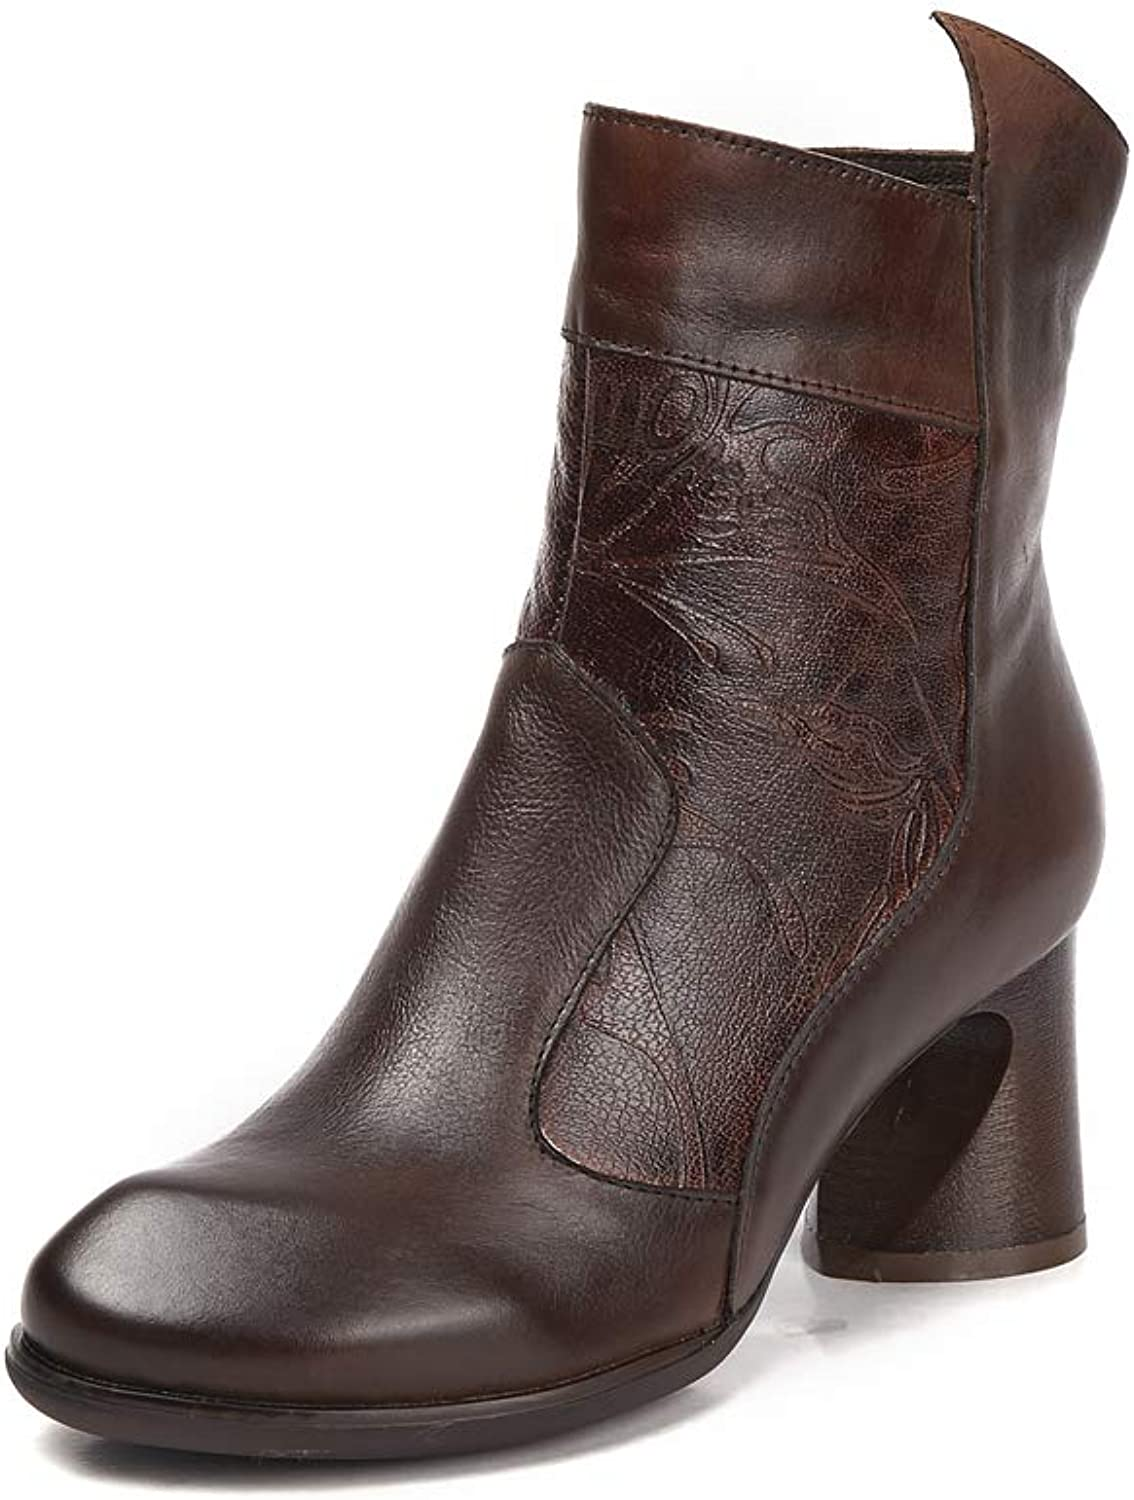 Women's Martin Boots Leather Round Head high Heel Boots Thick Side Zipper National Wind Vintage Carved Pattern Decorative Single Boots